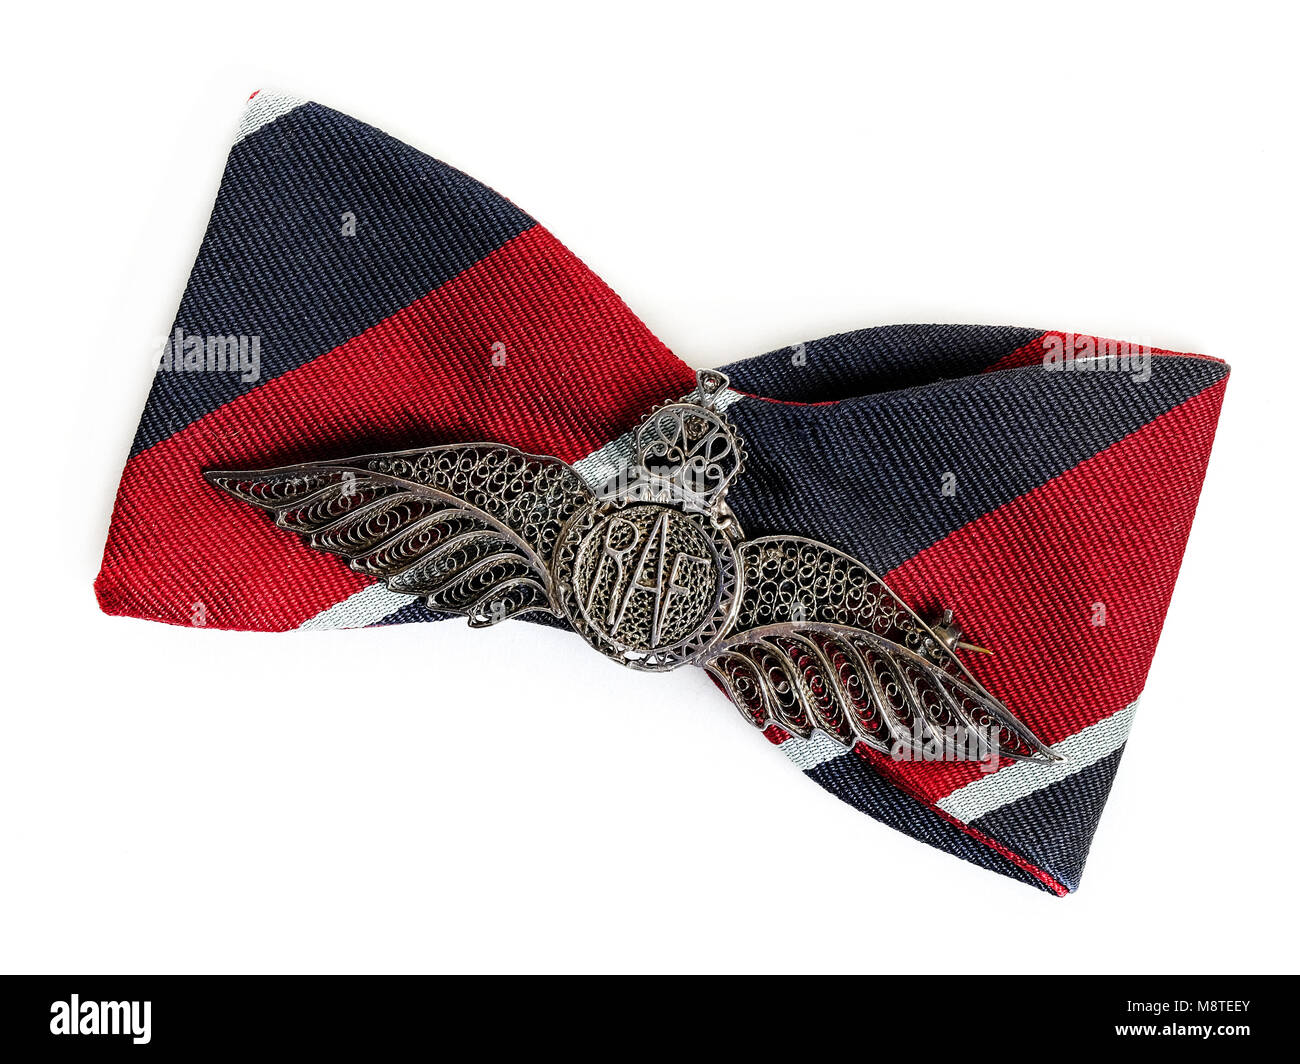 WW2 British RAF wings badge of silver filigree construction, probably made in India, mounted on a bow tie - Stock Image